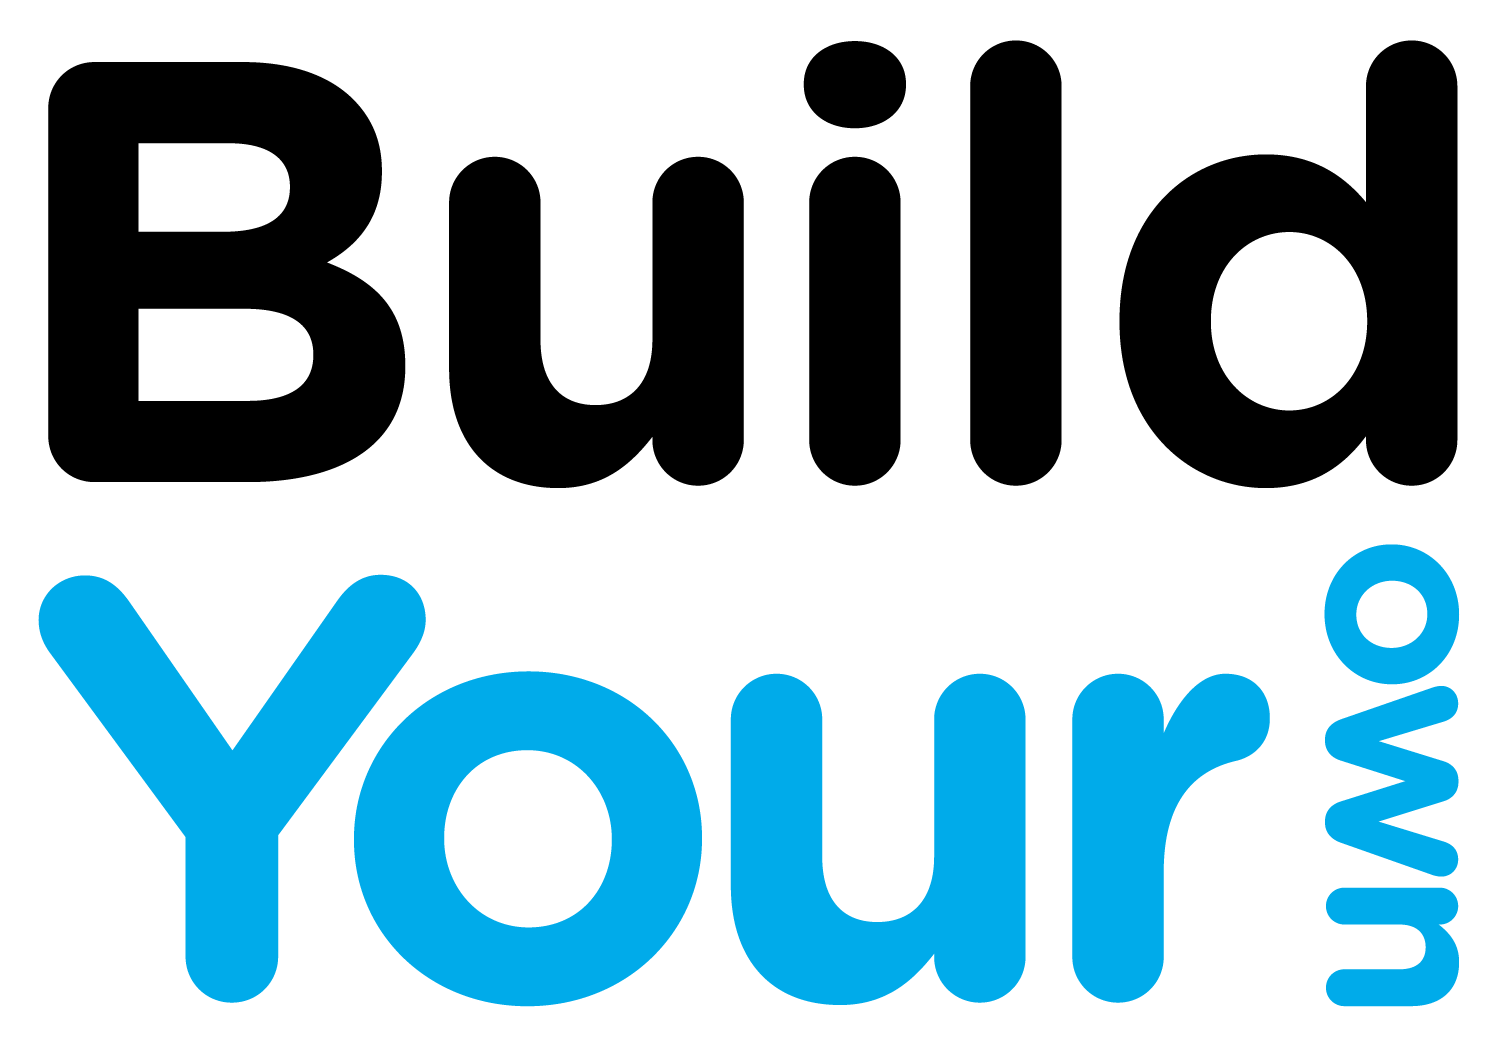 Build Your Own logo